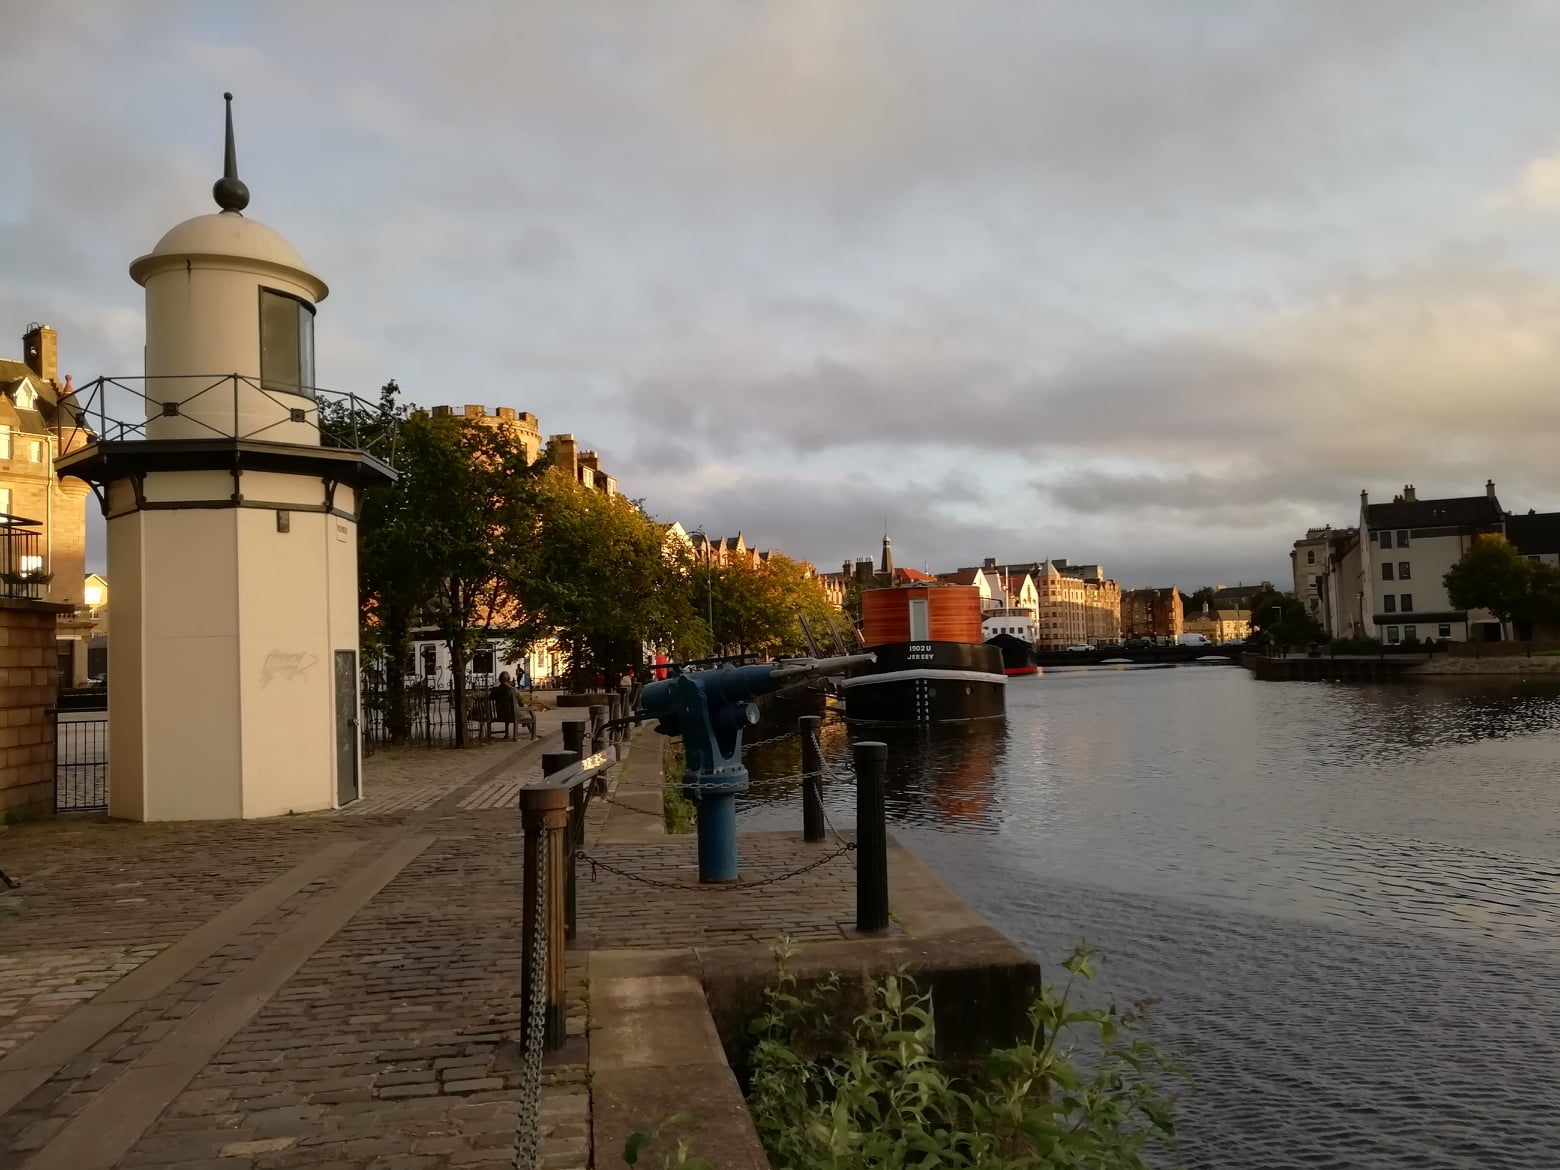 The Old Lighthouse and Whale Harpoon on Shore, Leith